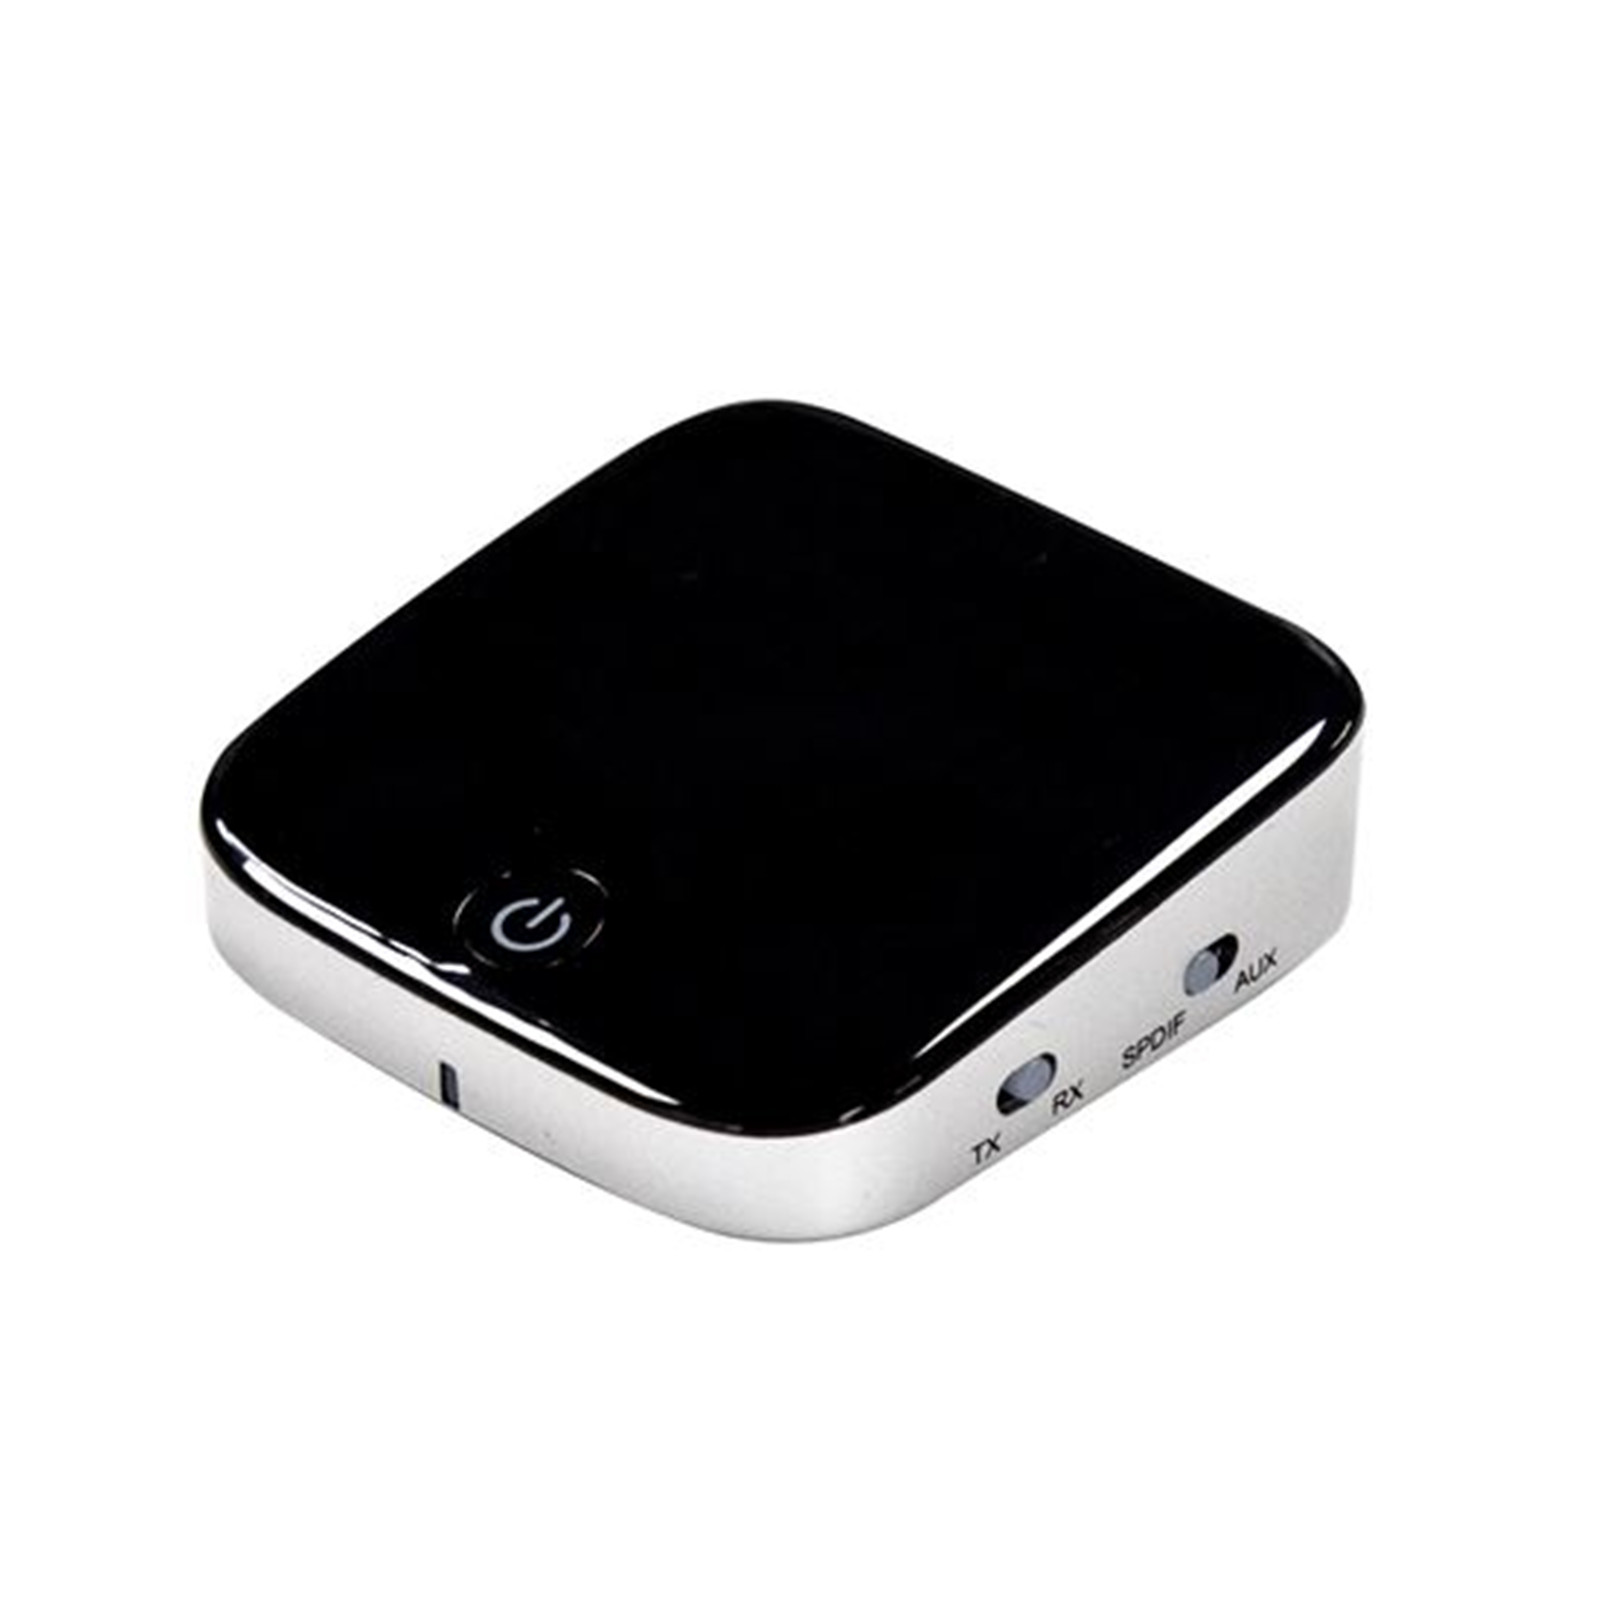 8cded557550 Buy the Dynamix BLUECAST-2 Bluetooth 4.1 Transmitter Receive ...